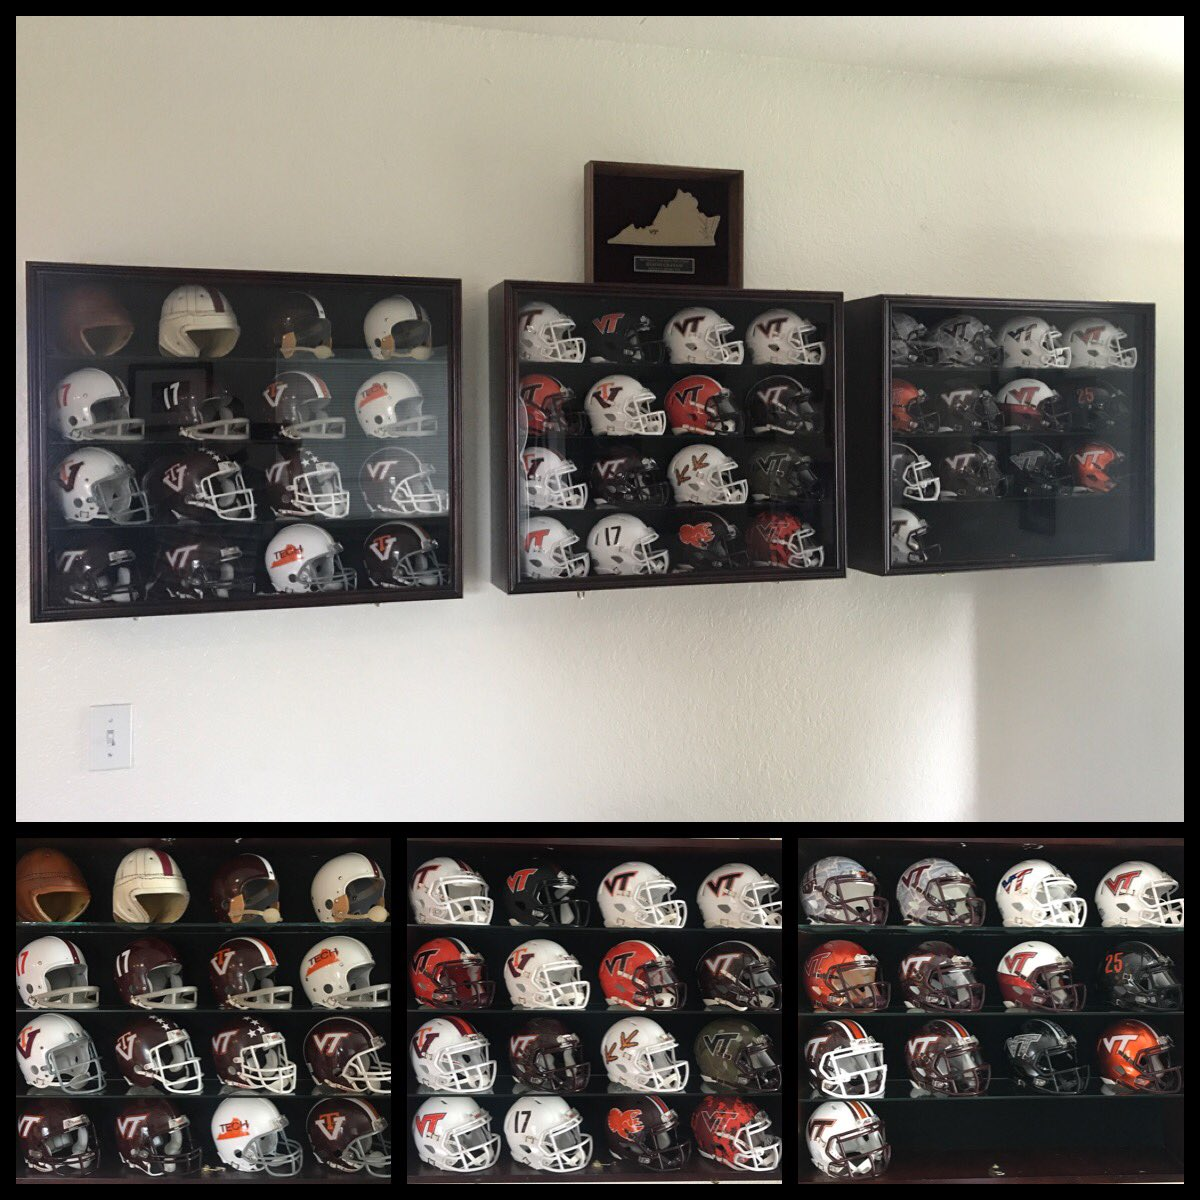 5a19ca499 Recently finished my custom timeline of my alma mater Va Tech mini helmets.  No detail left behind.pic.twitter.com/qYPshwddch